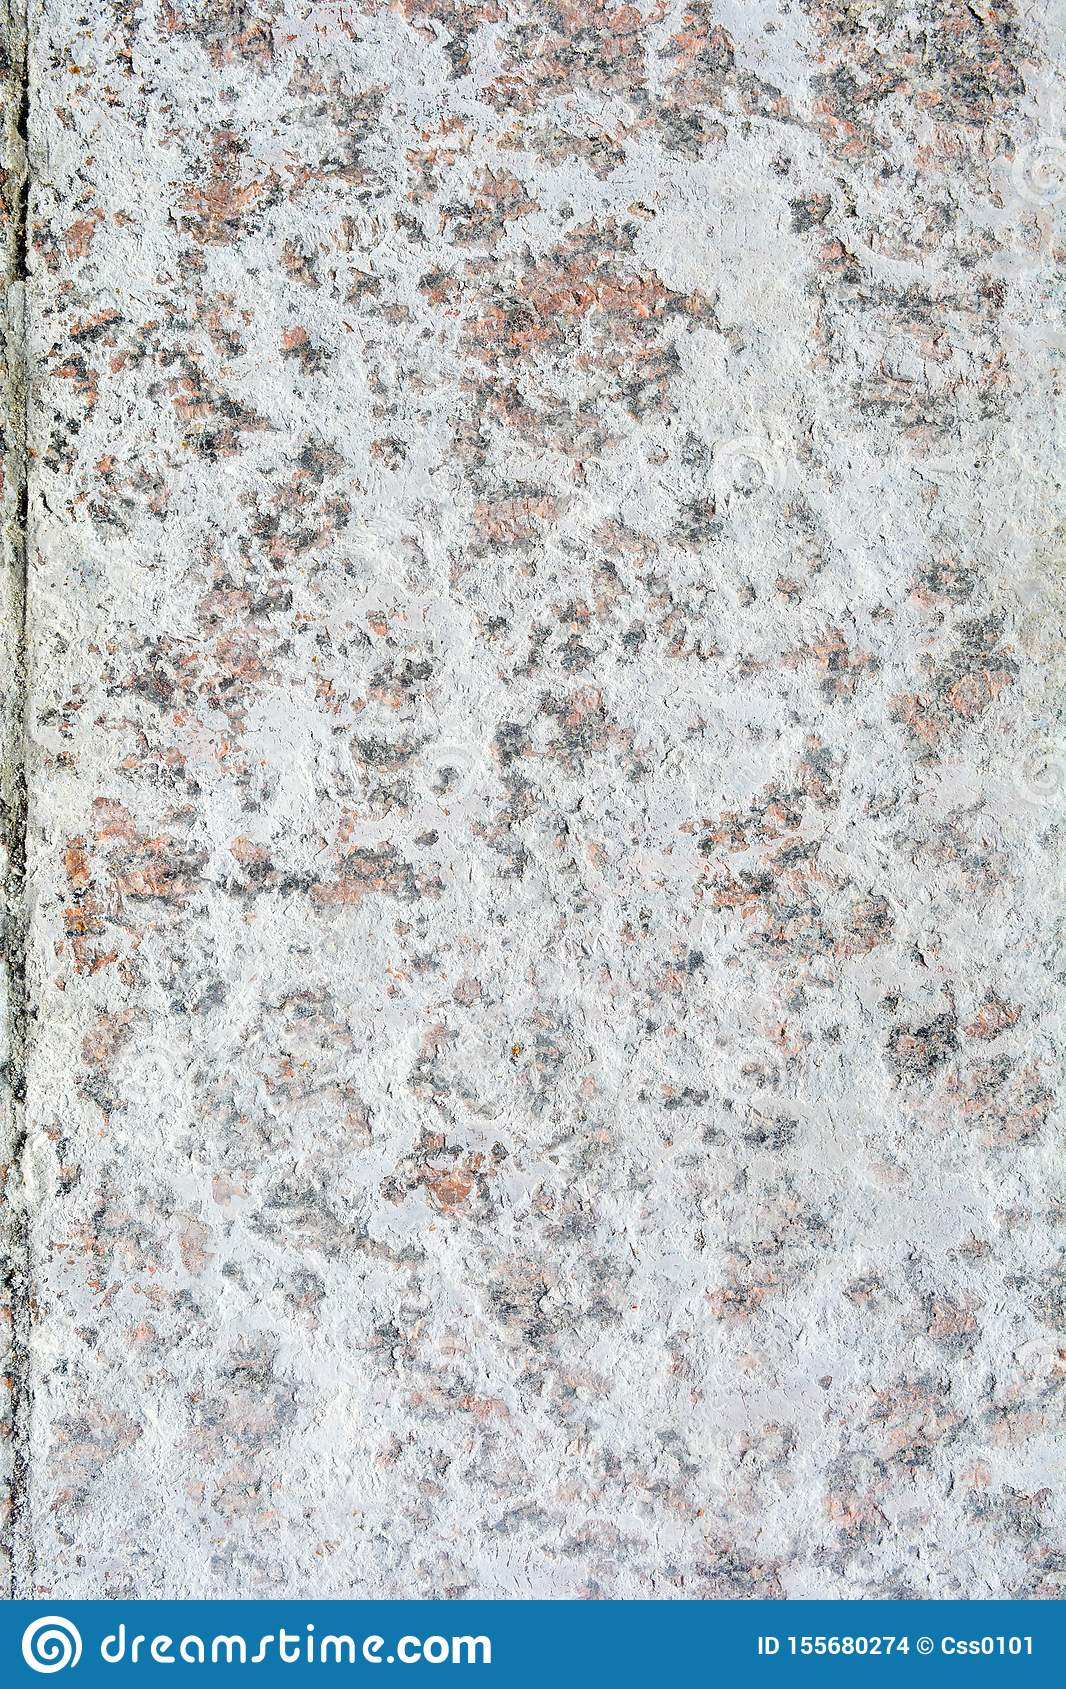 Texture Of Polished Granite Stone Floor With White Dense Mud Like Chalk Or Lime Stock Photo Image Of Design Grain 155680274